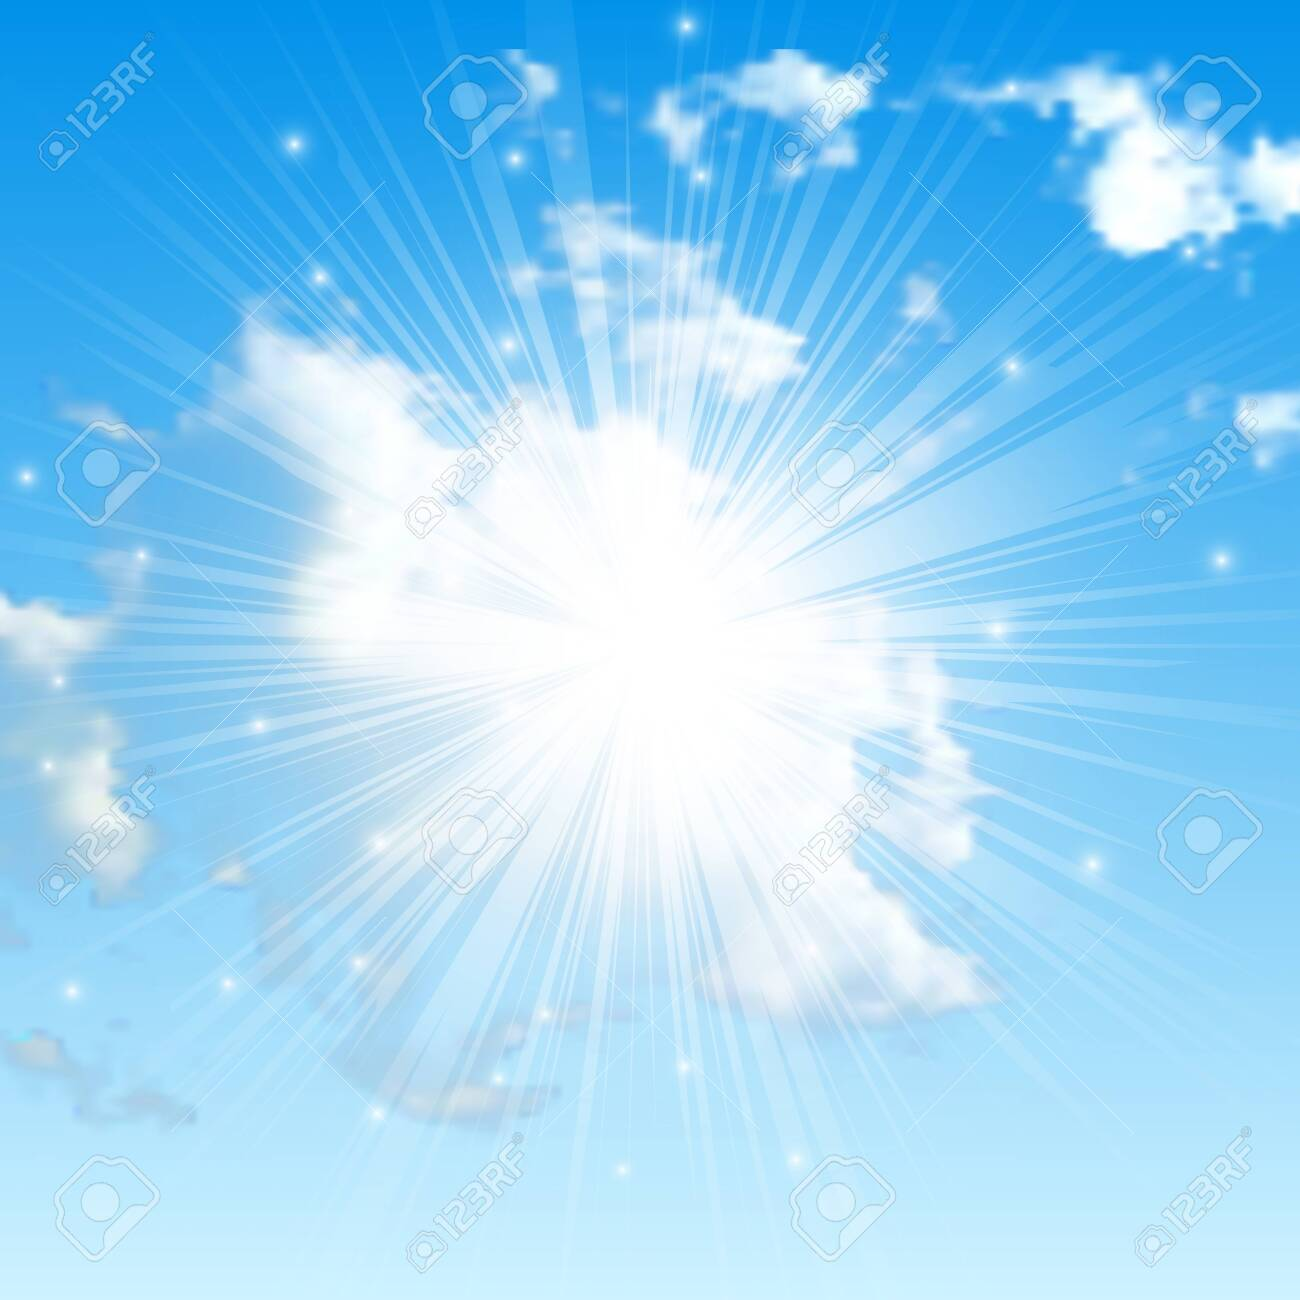 Natural background with clouds and sun on blue sky. Realistic cloud on blue backdrop. Vector illustration - 152773444